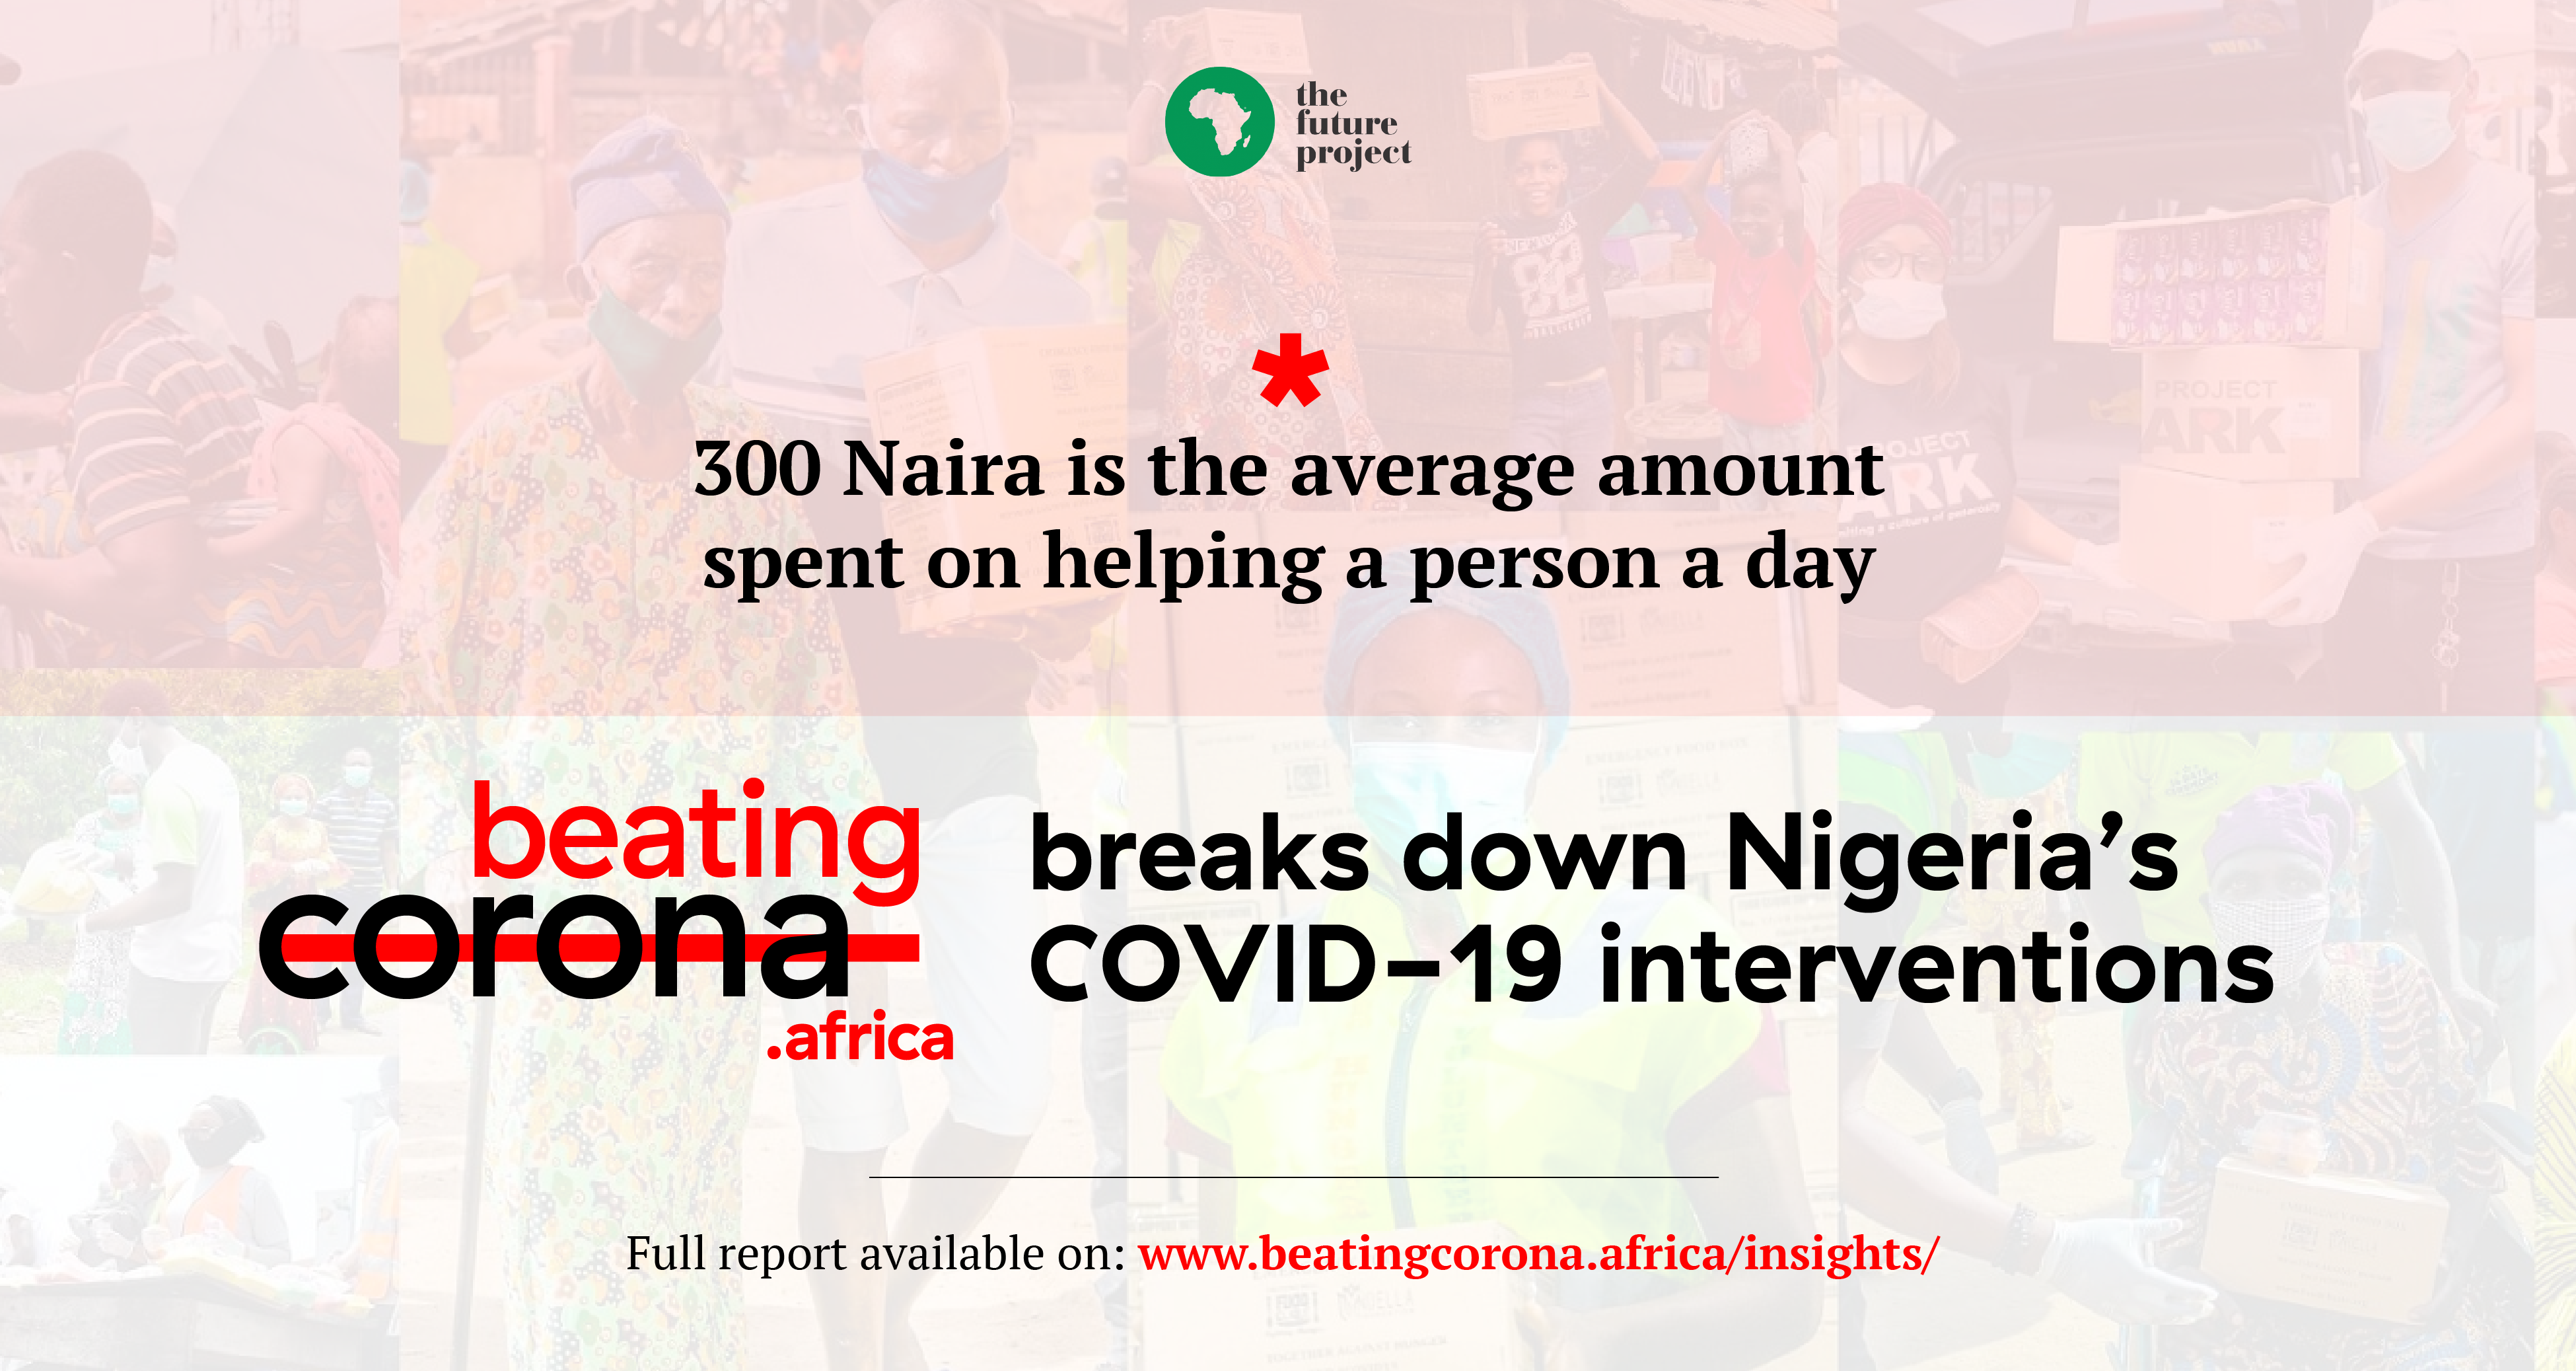 300 Naira is the average amount spent on helping a person a day – BeatingCoronaAfrica breaks down Nigeria's COVID-19 interventions.